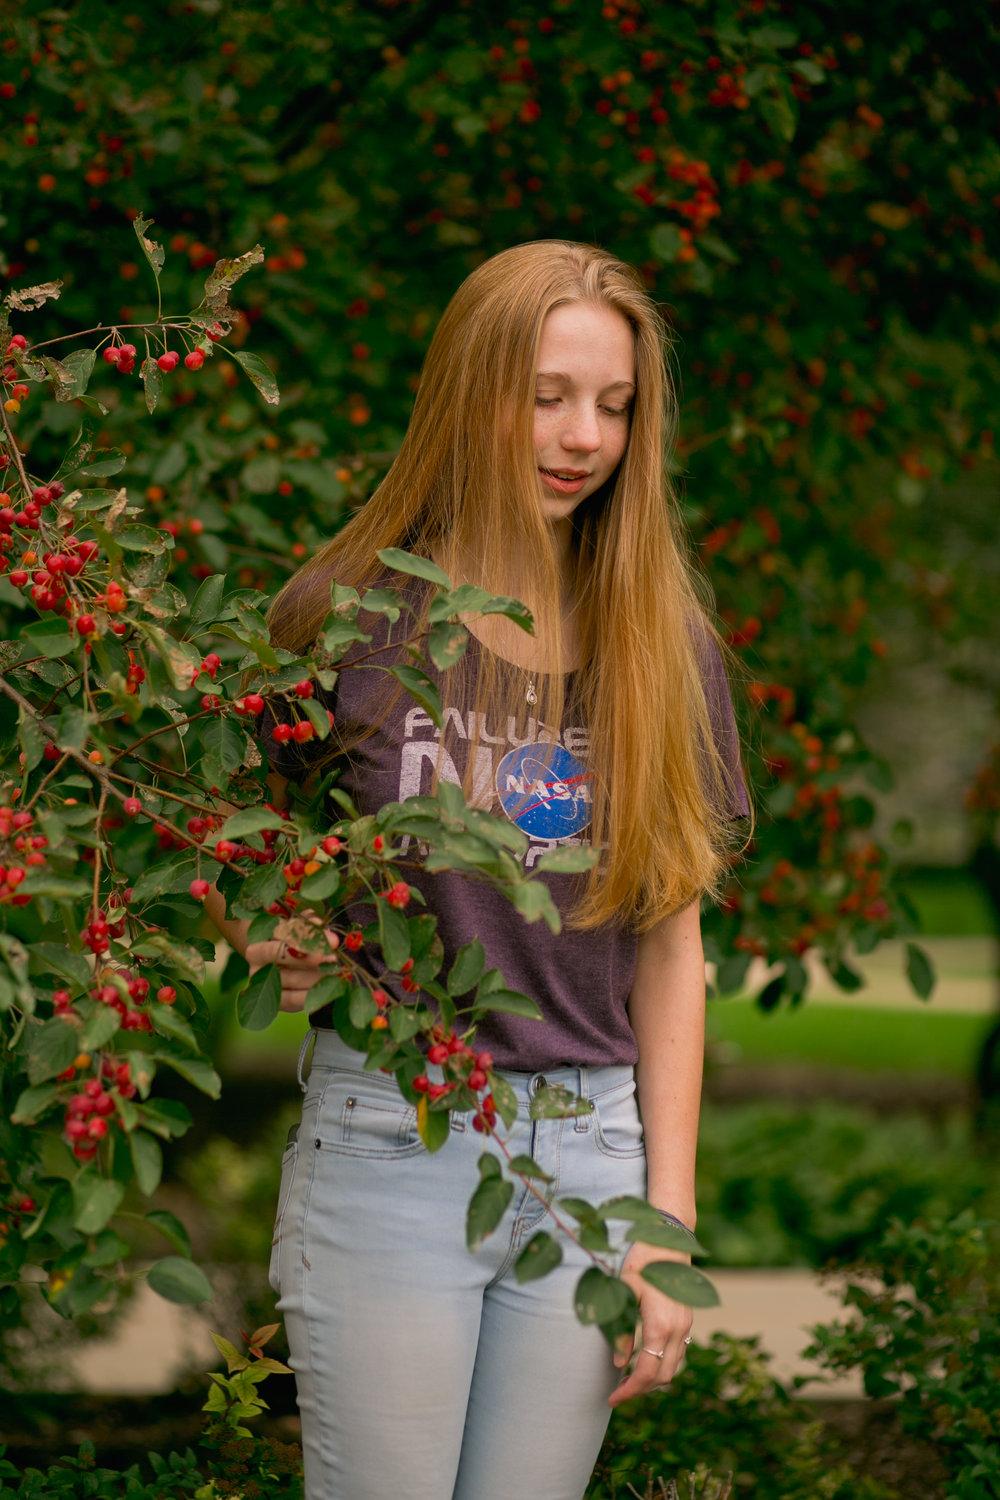 senior girl wearing nasa tshirt and light blue jeans standing in low tree